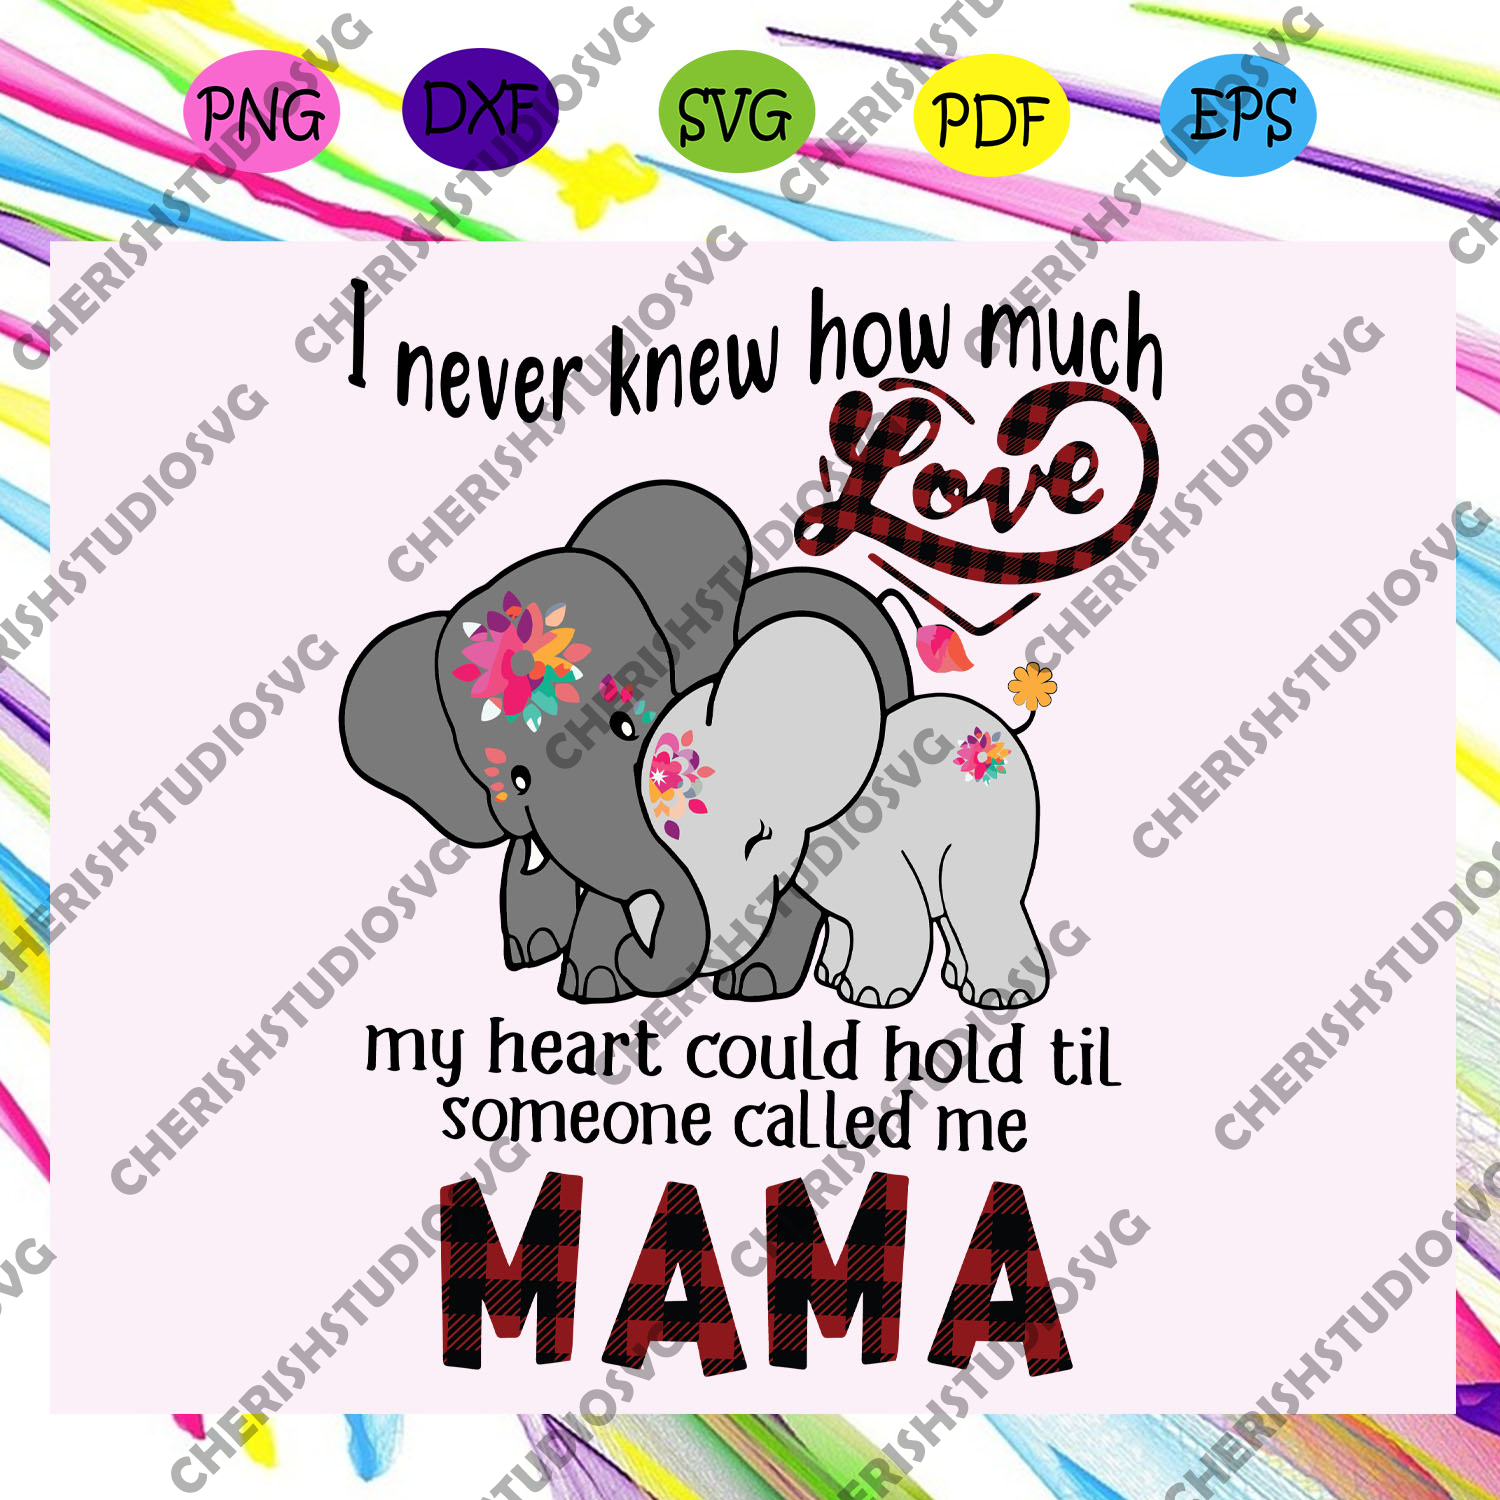 I never knew how much love my heart could hold svg, mama svg, mama life, mama lover, mother day svg, mother day gift, mother day shirt, For Silhouette, Files For Cricut, SVG, DXF, EPS, PNG Instant Download